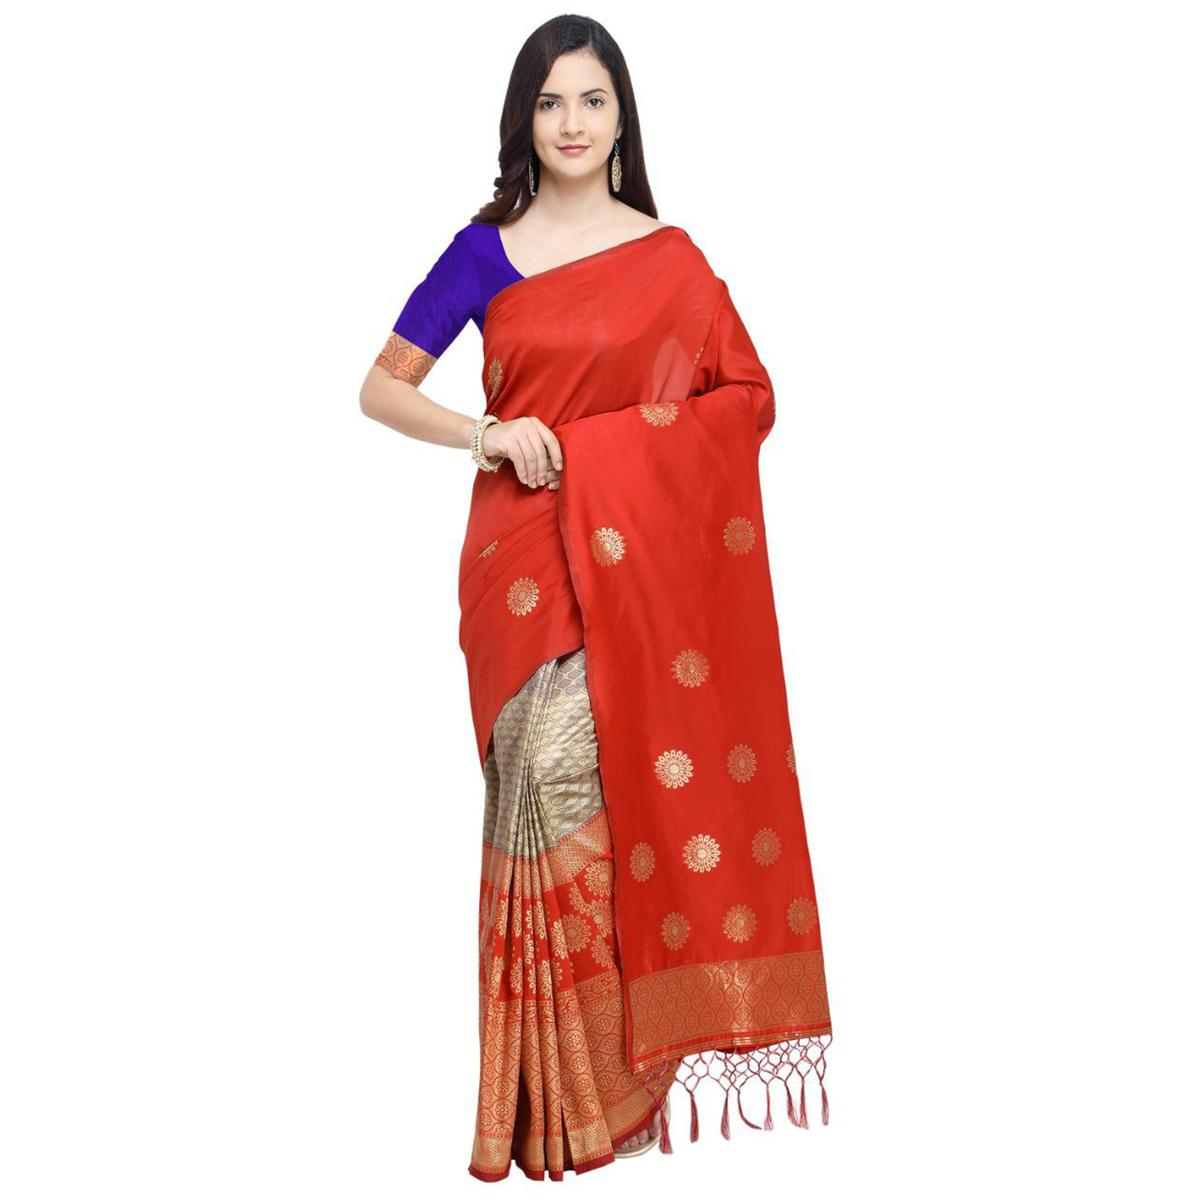 Refreshing Coral Red Colored Festive Wear Woven Silk Half-Half Saree